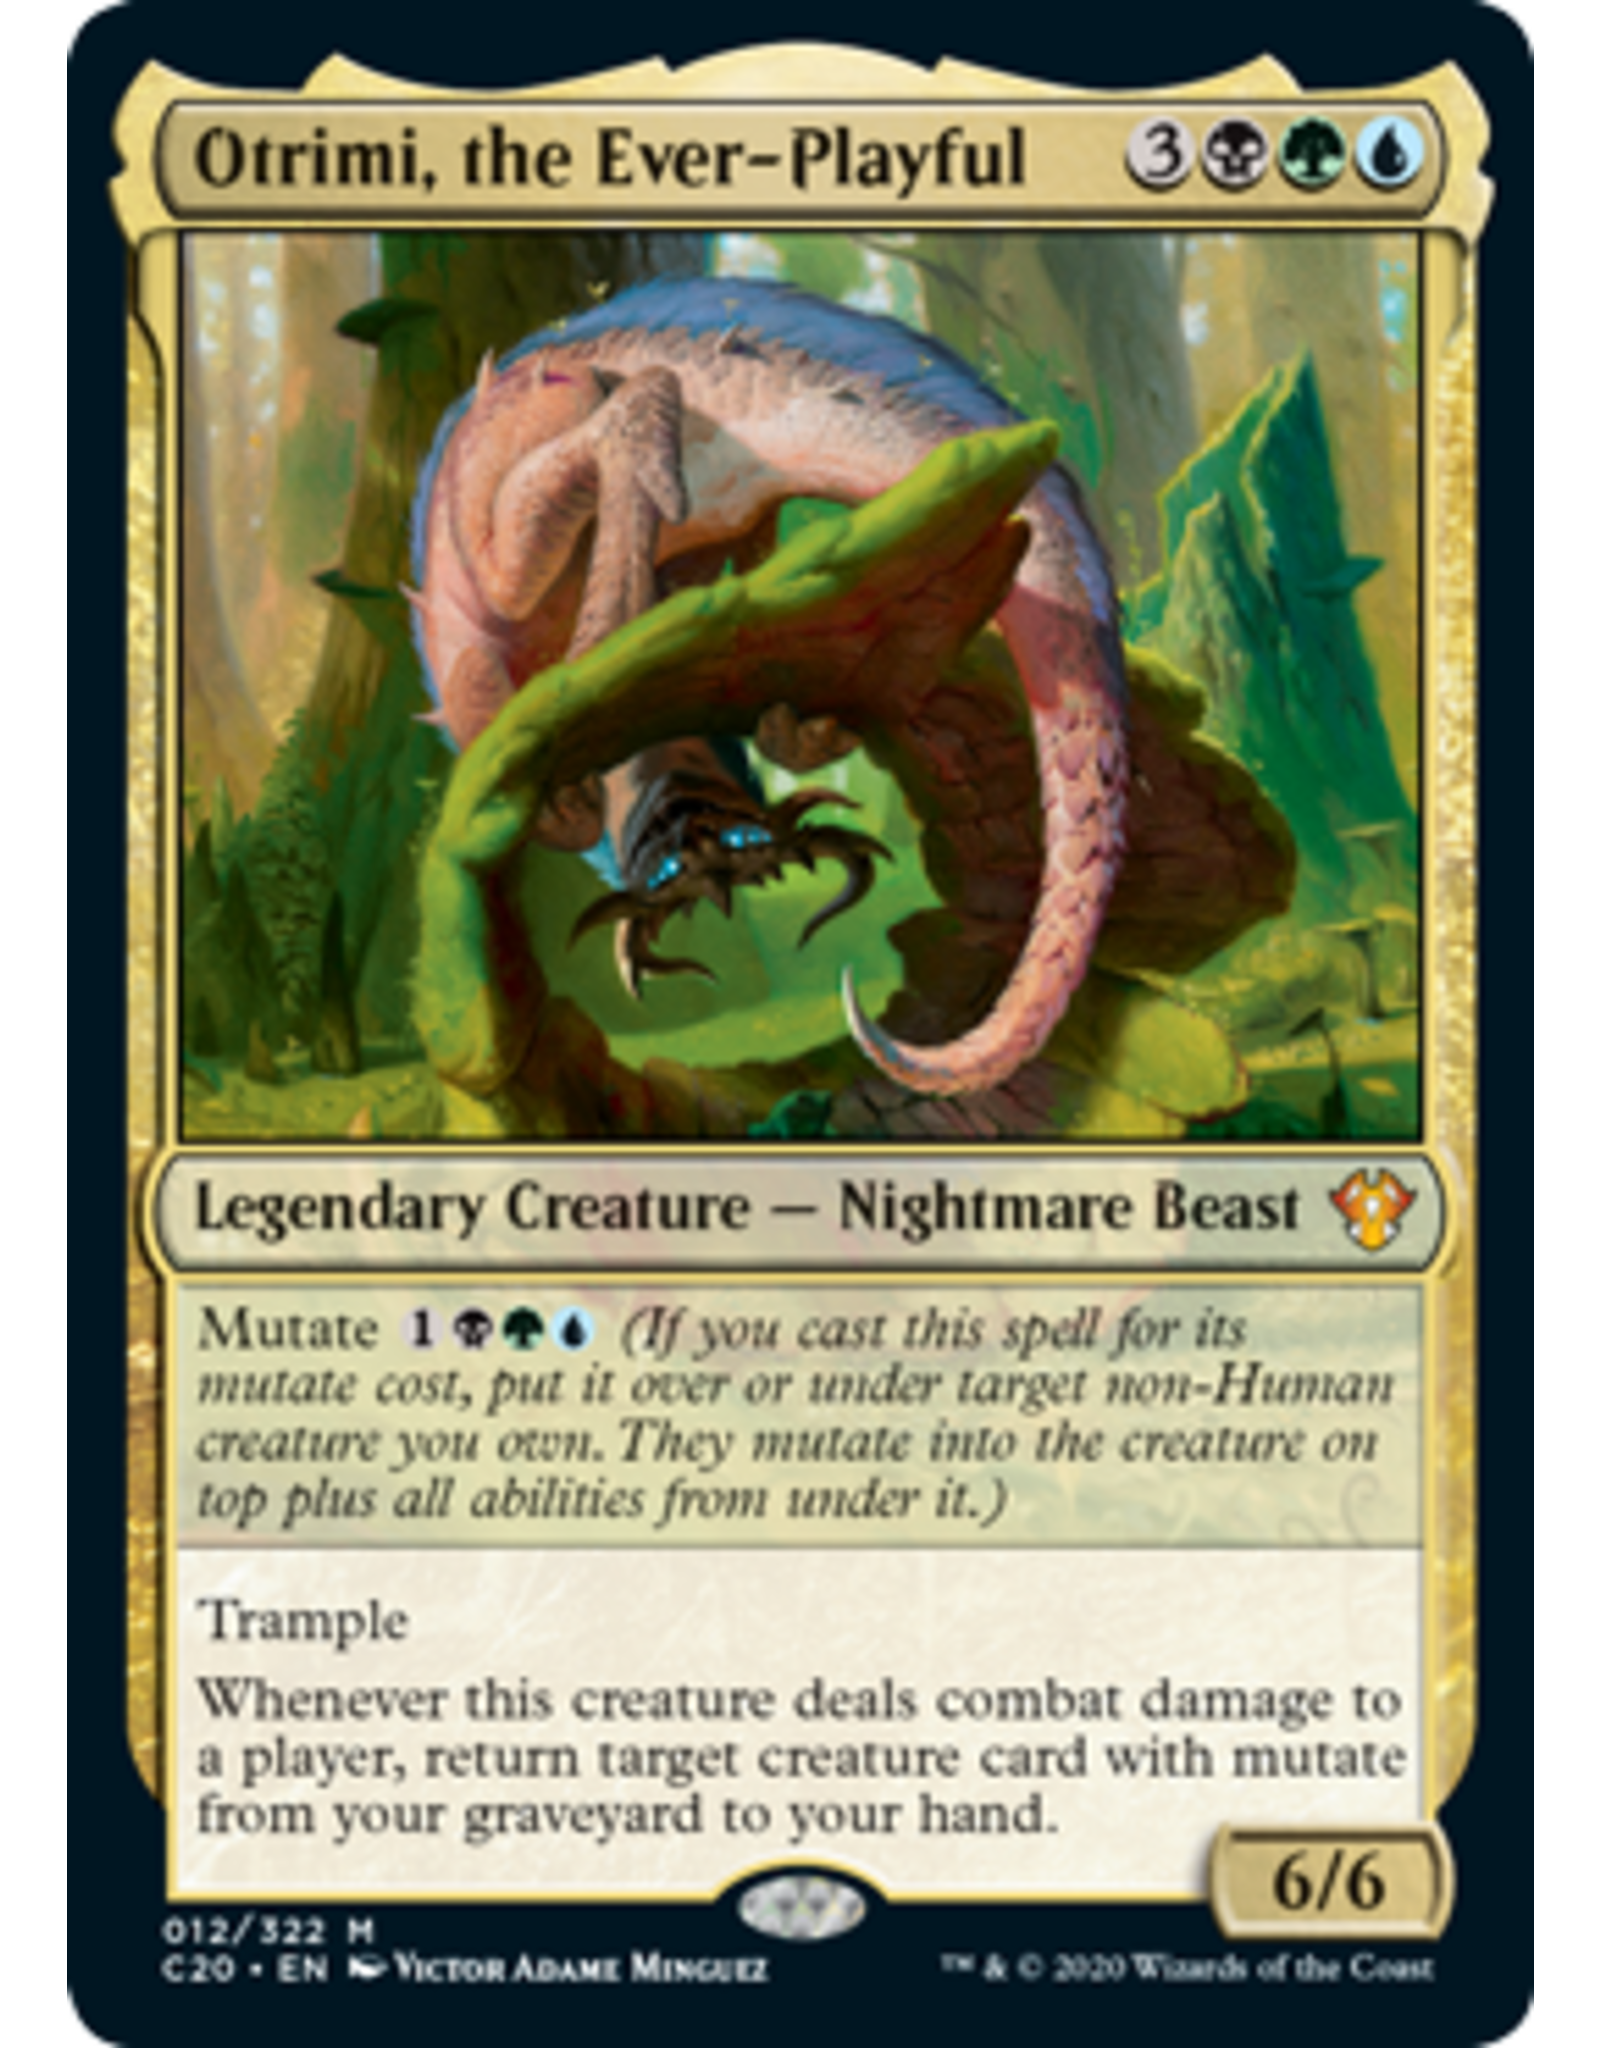 Wizards of the Coast Magic: Commander 2020 Deck - Enhanced Evolution